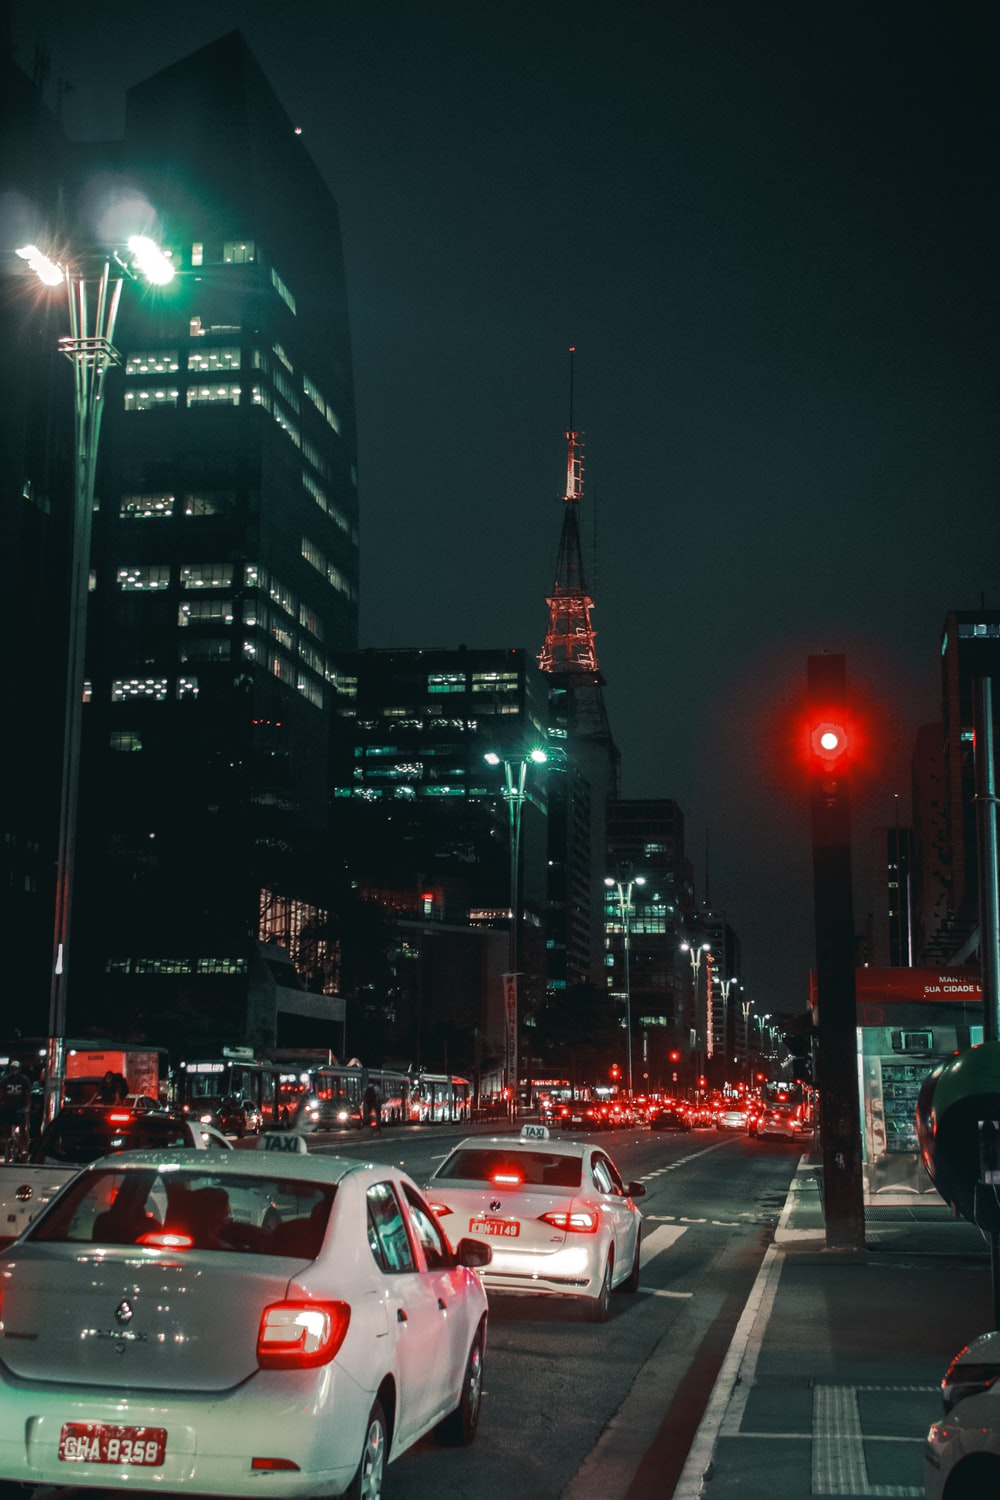 cars on road near high rise buildings during nighttime